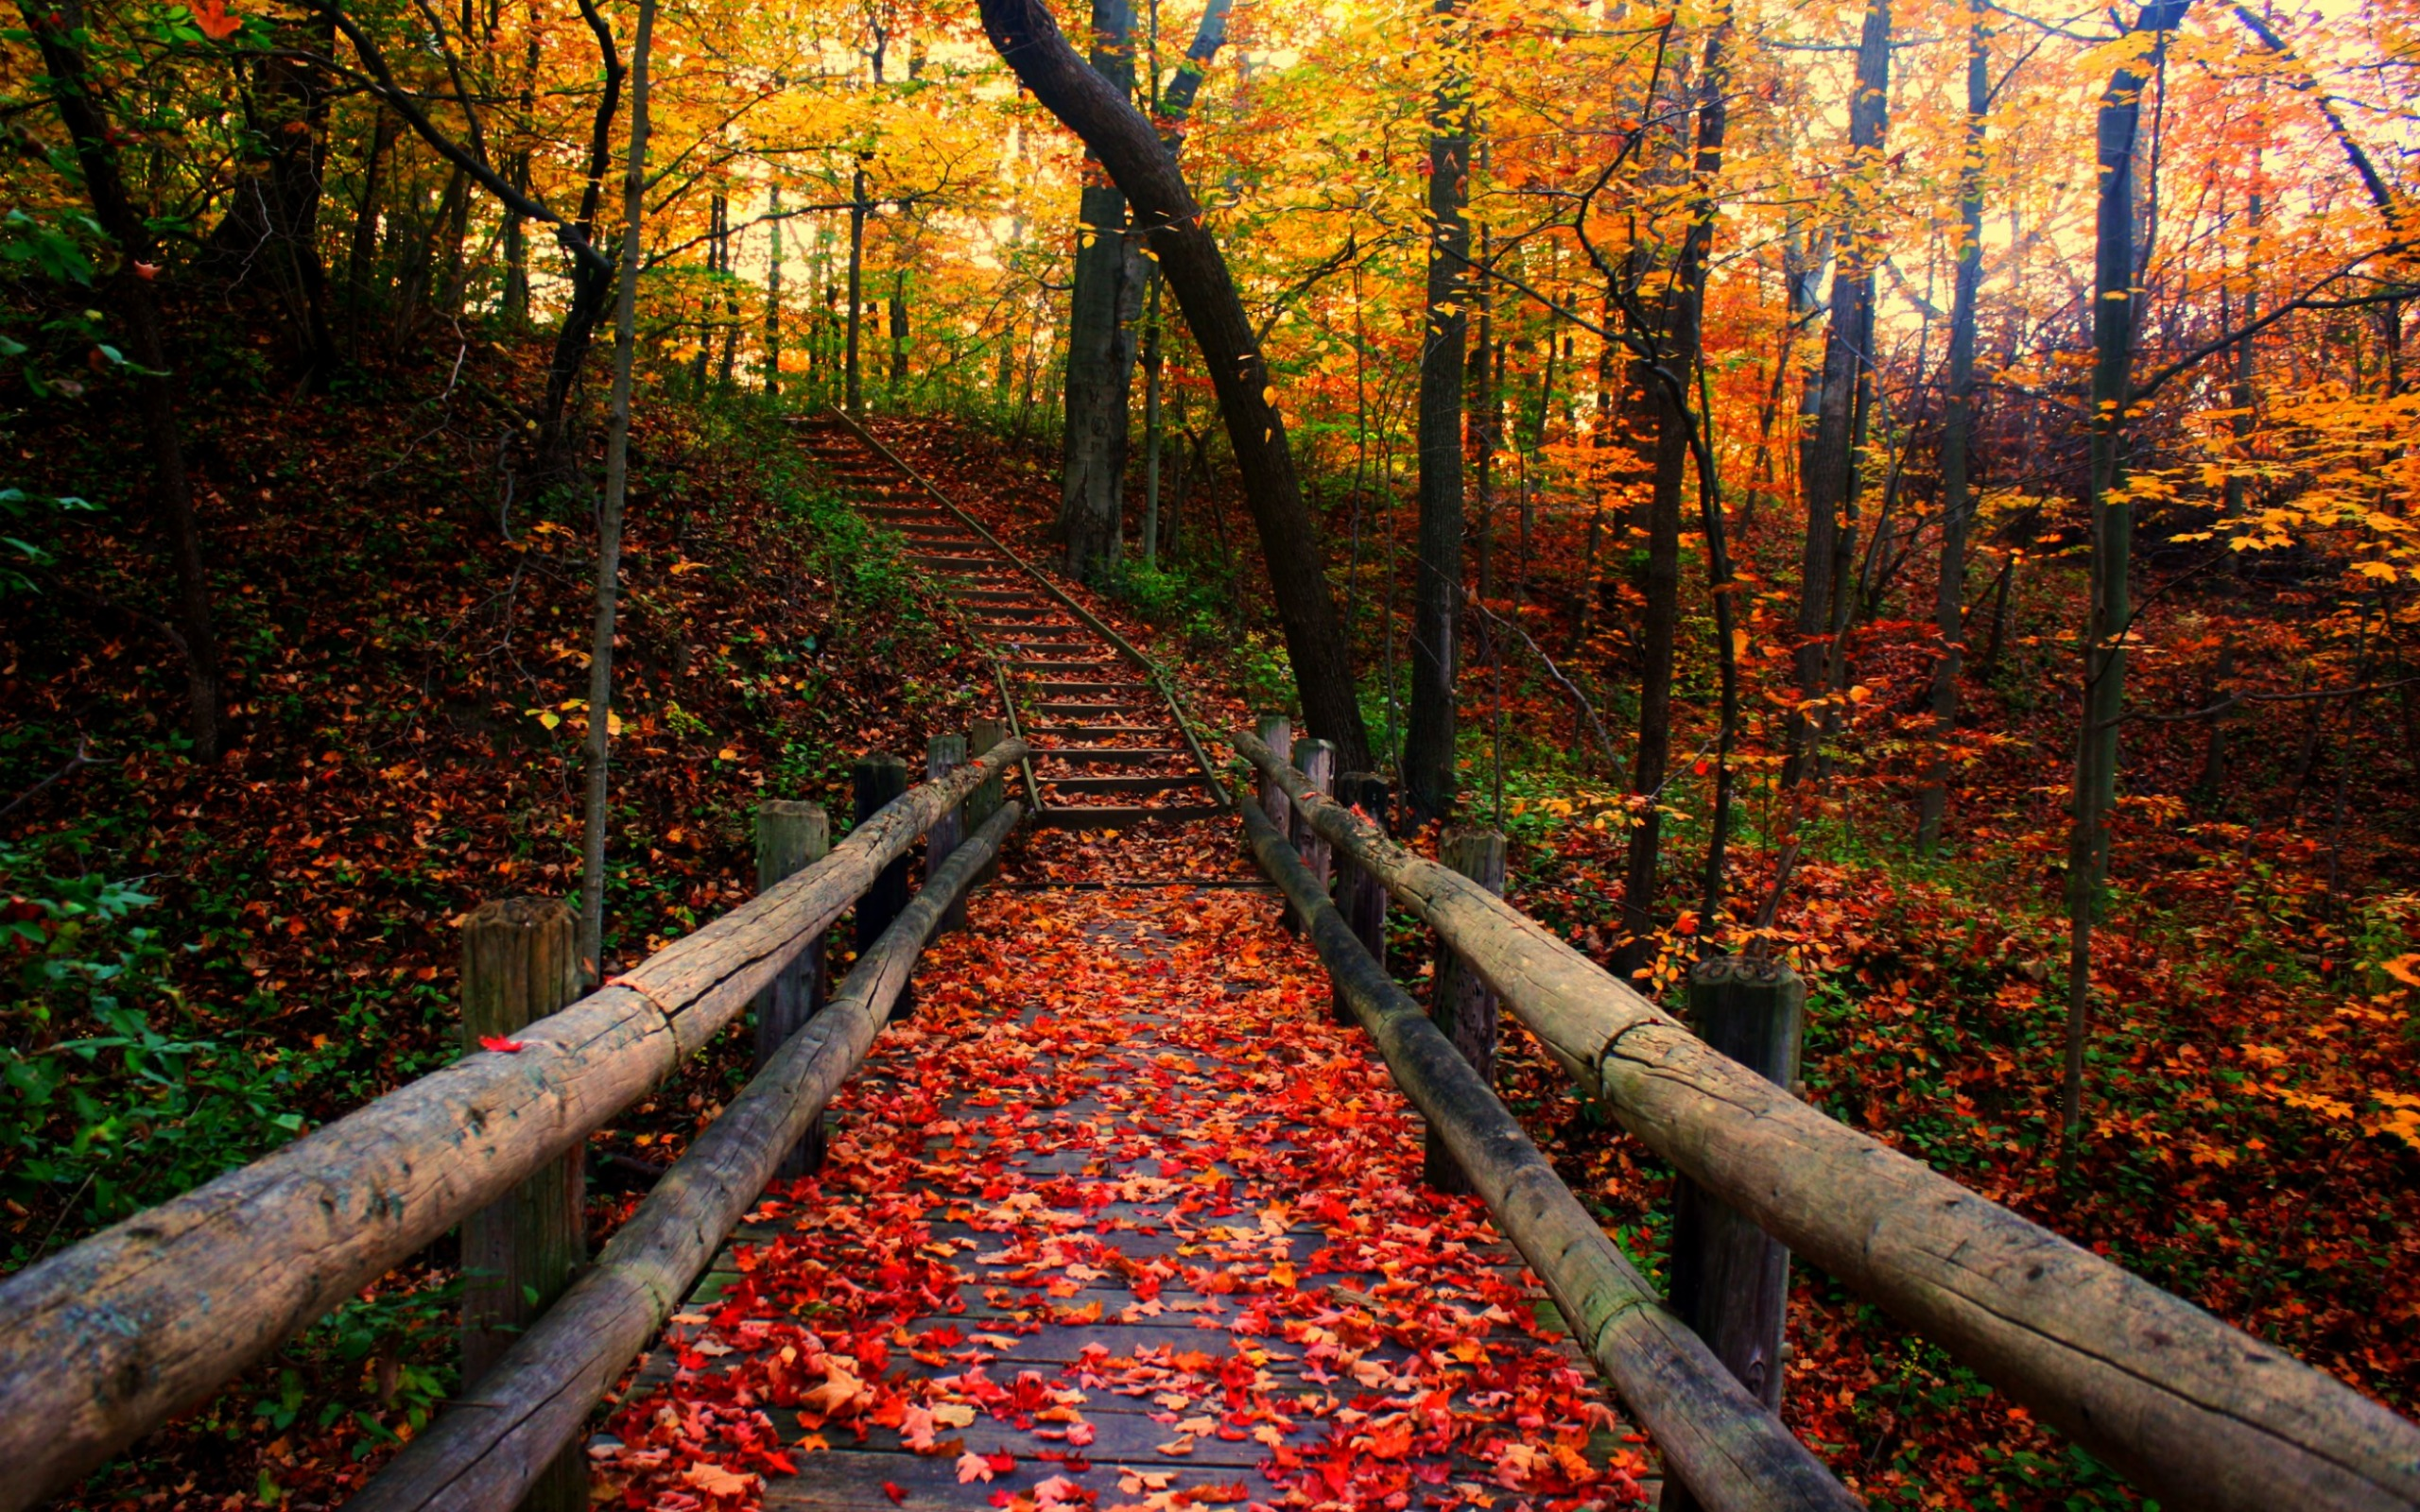 autumn-scenery-wooden-bridge-and-stairs-in-the-forest